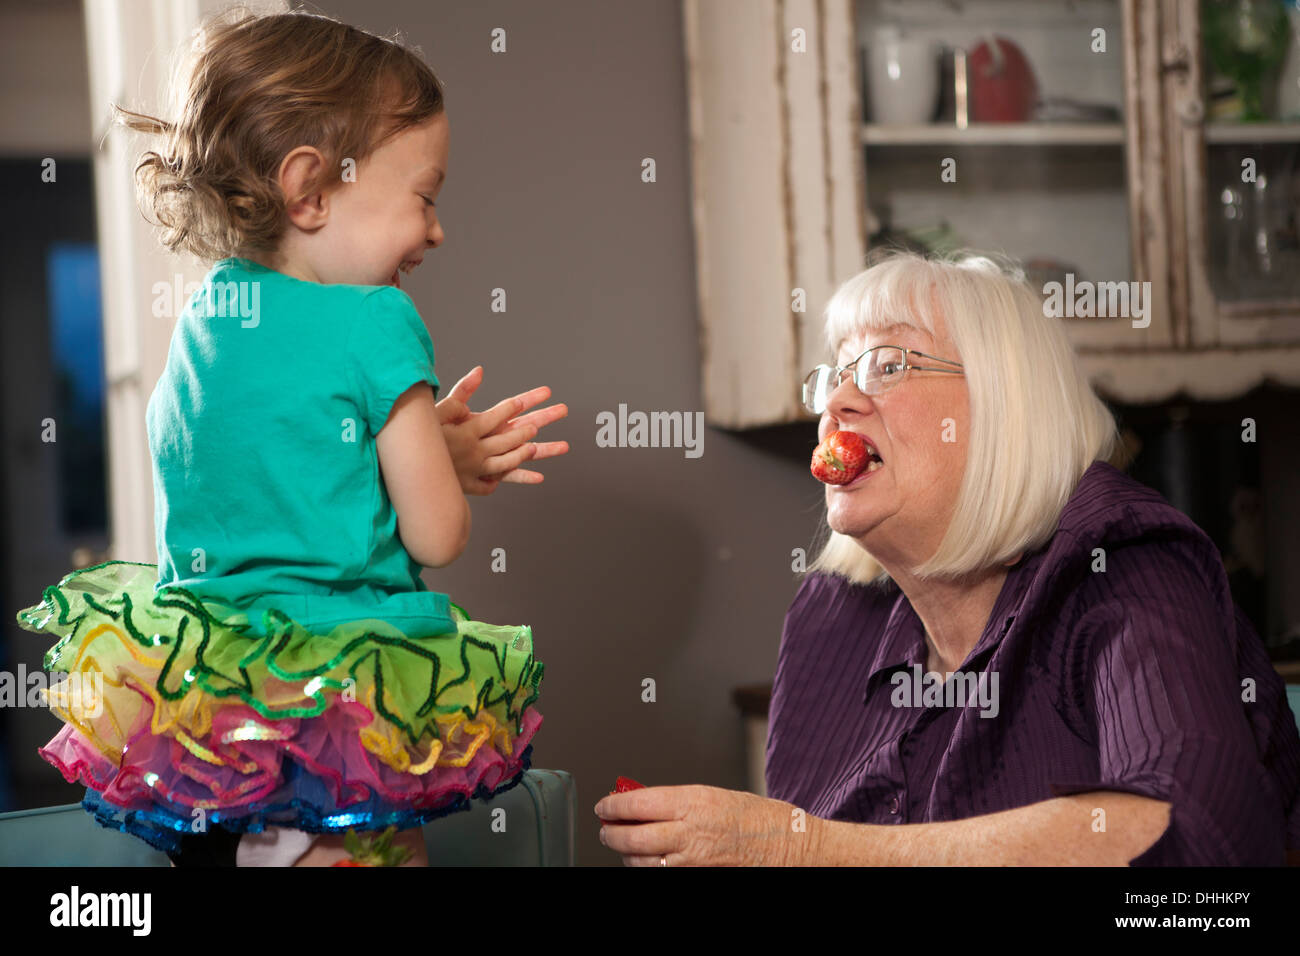 Girl feeding grandmother a strawberry - Stock Image